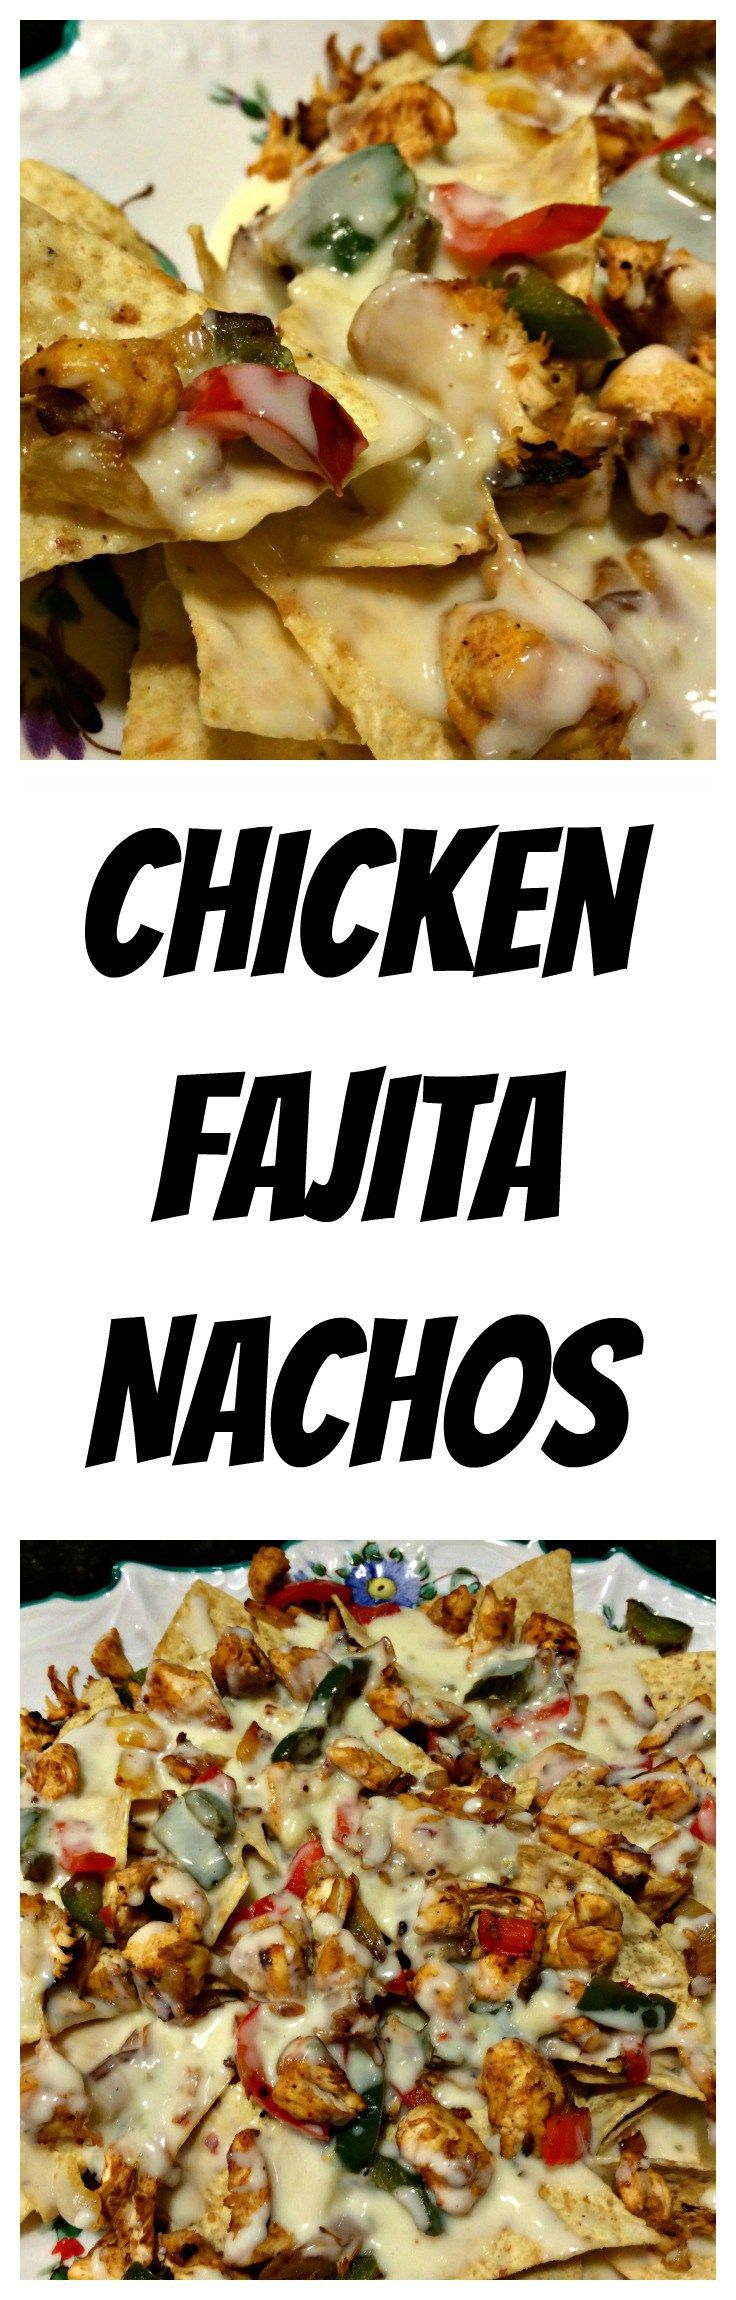 Chicken Fajita Nachos                                                                                                                                                                                 More